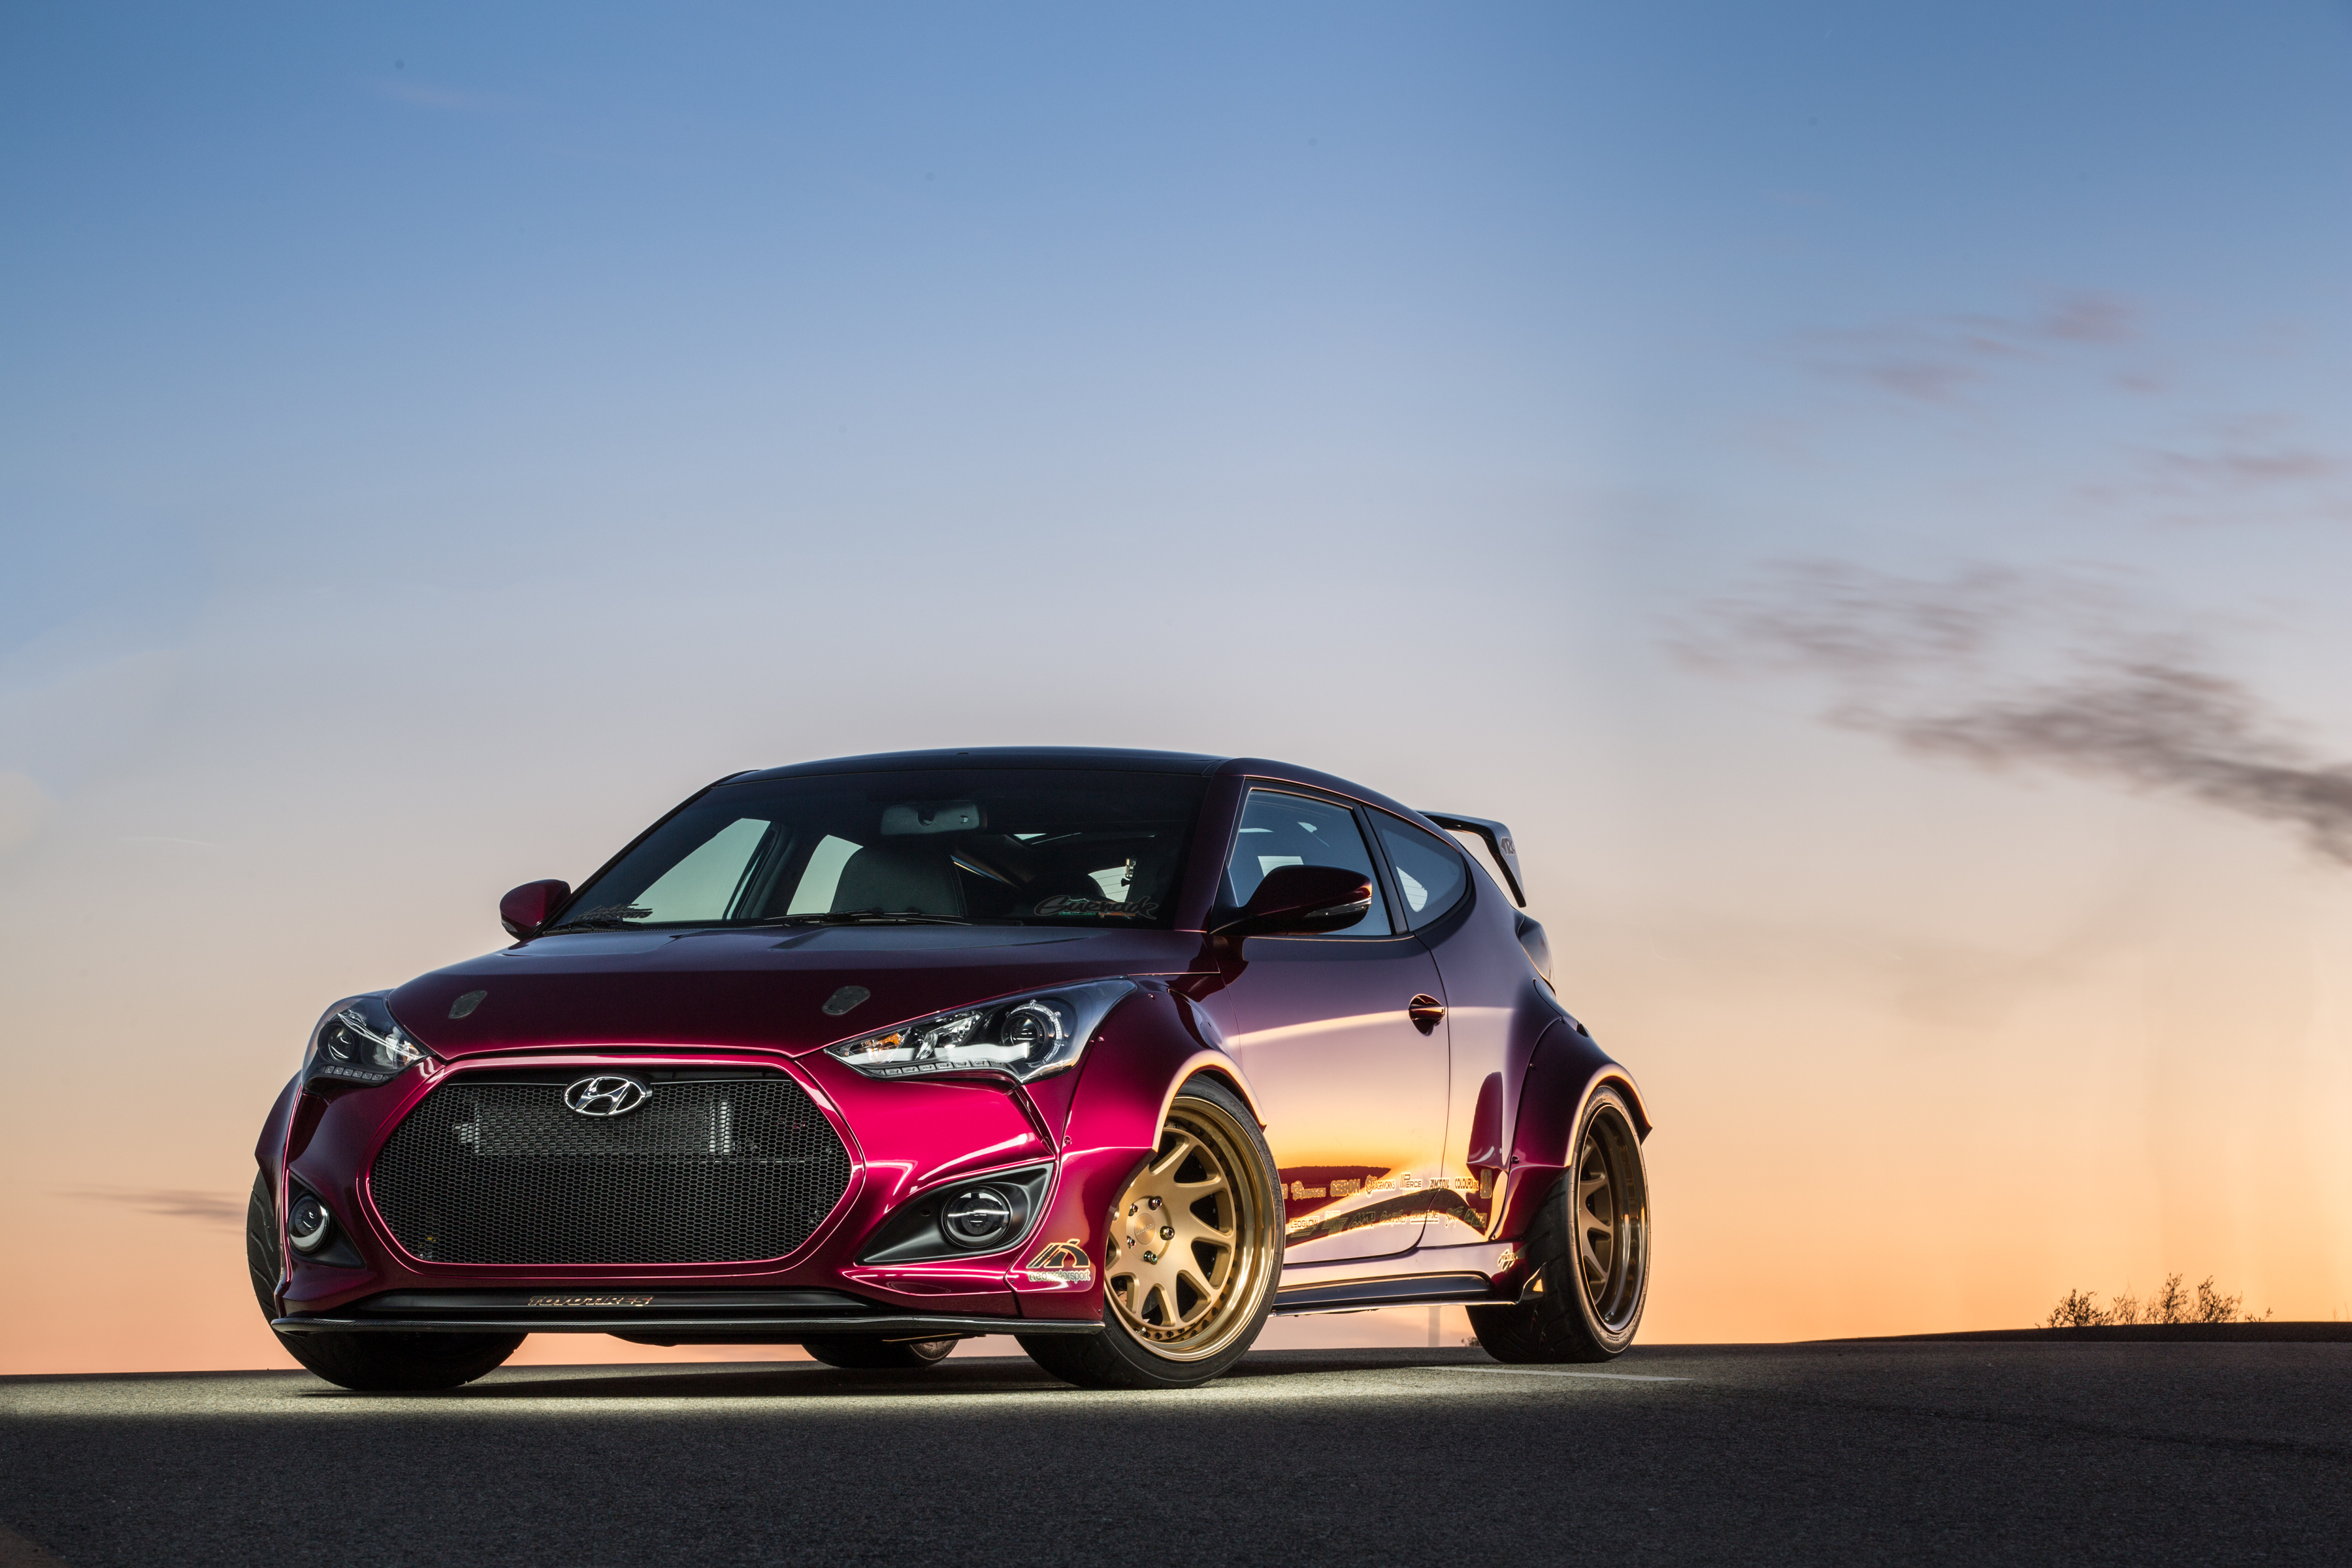 Gurnade Veloster 2016 Sema Build Lightner Motorsports Hyundai Turbo Intercooler Check Out These Amazing Photos From Proving Grounds In The Mojave Desert By Jason Chatterley Design And Innocean Usa